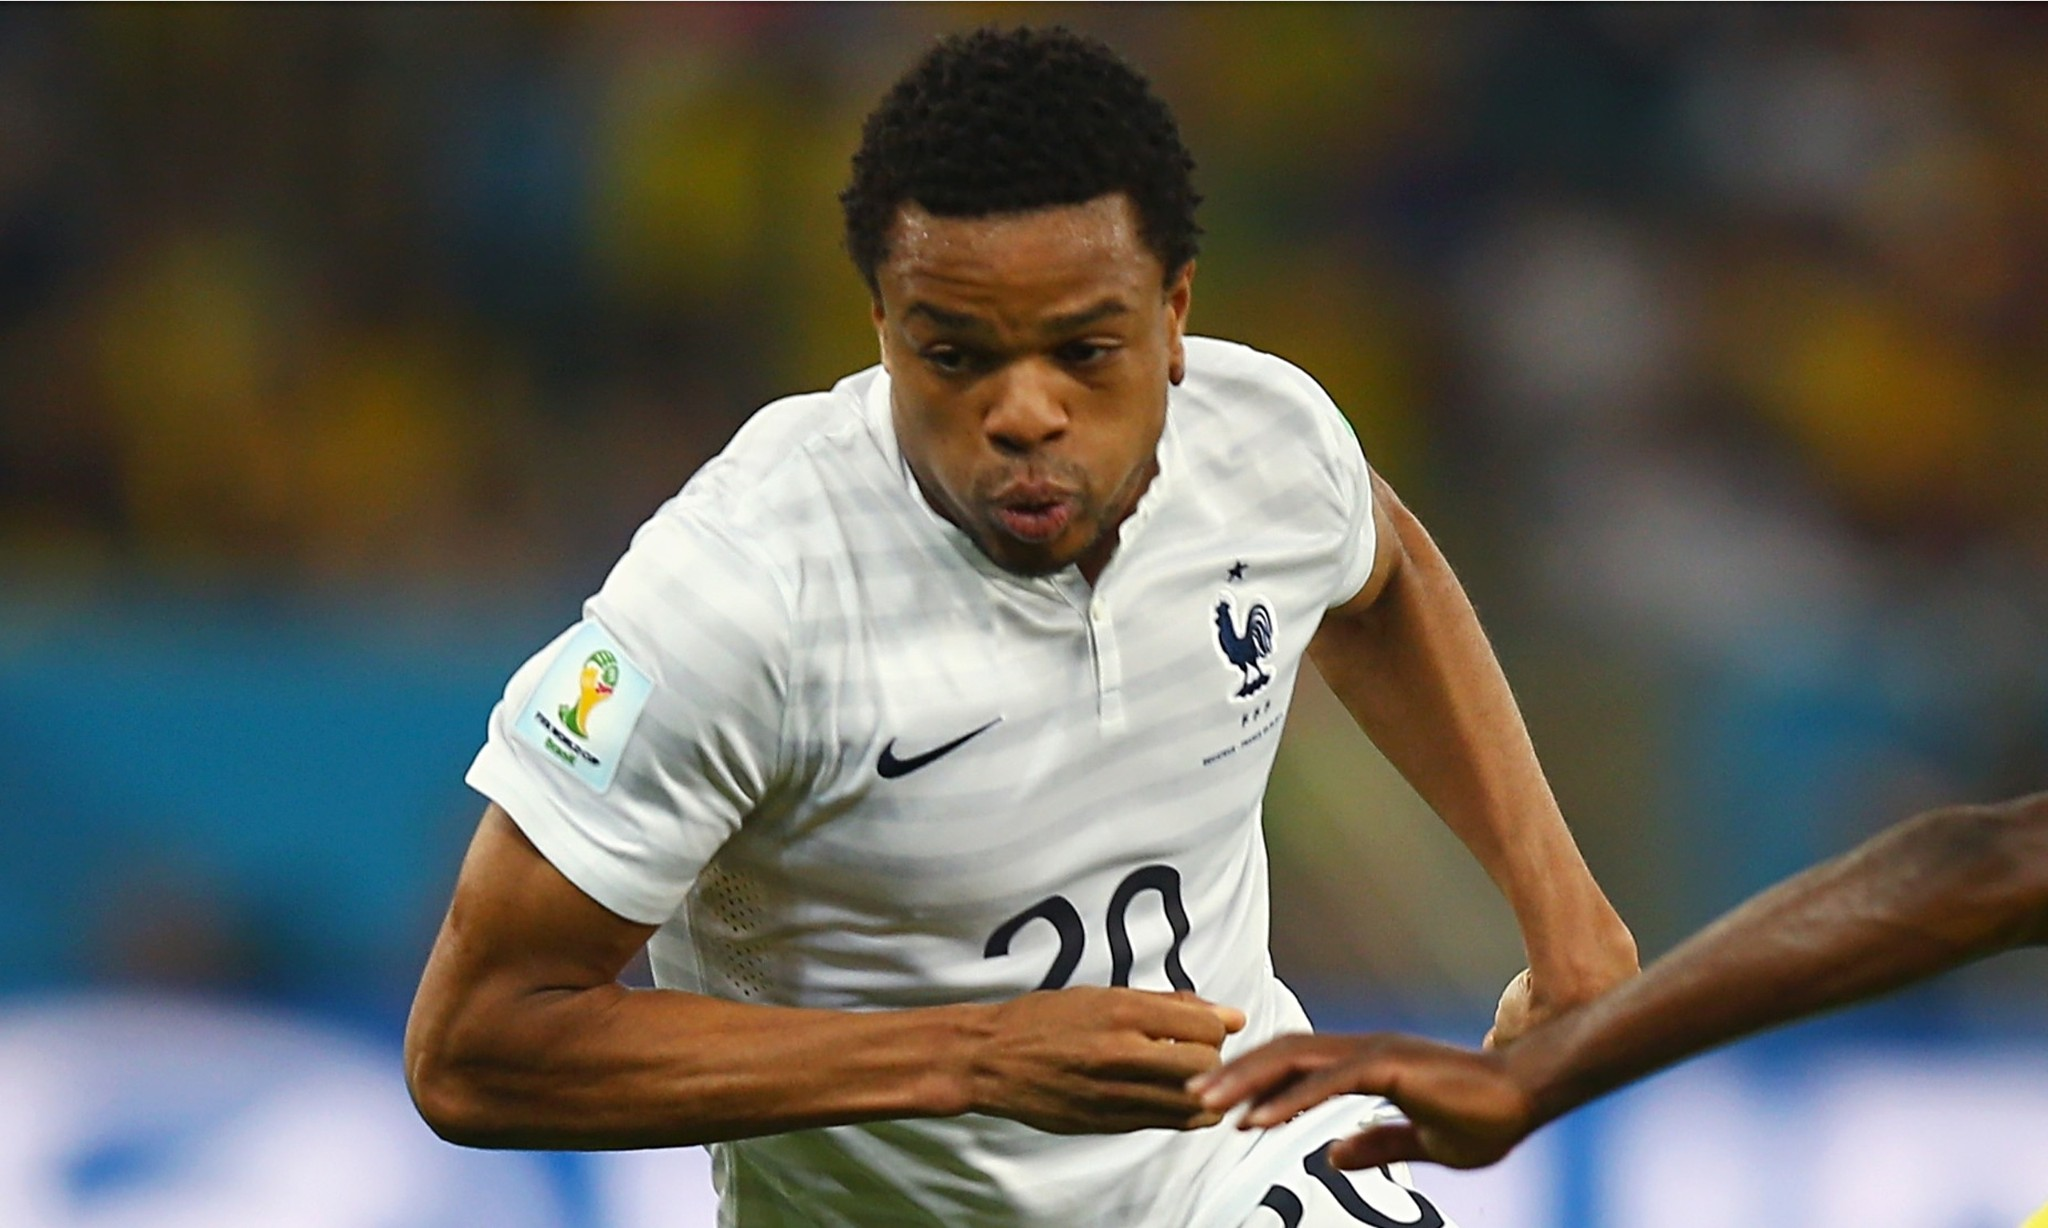 Football transfer rumours: Arsenal in for Rémy, Balotelli and Mandzukic?